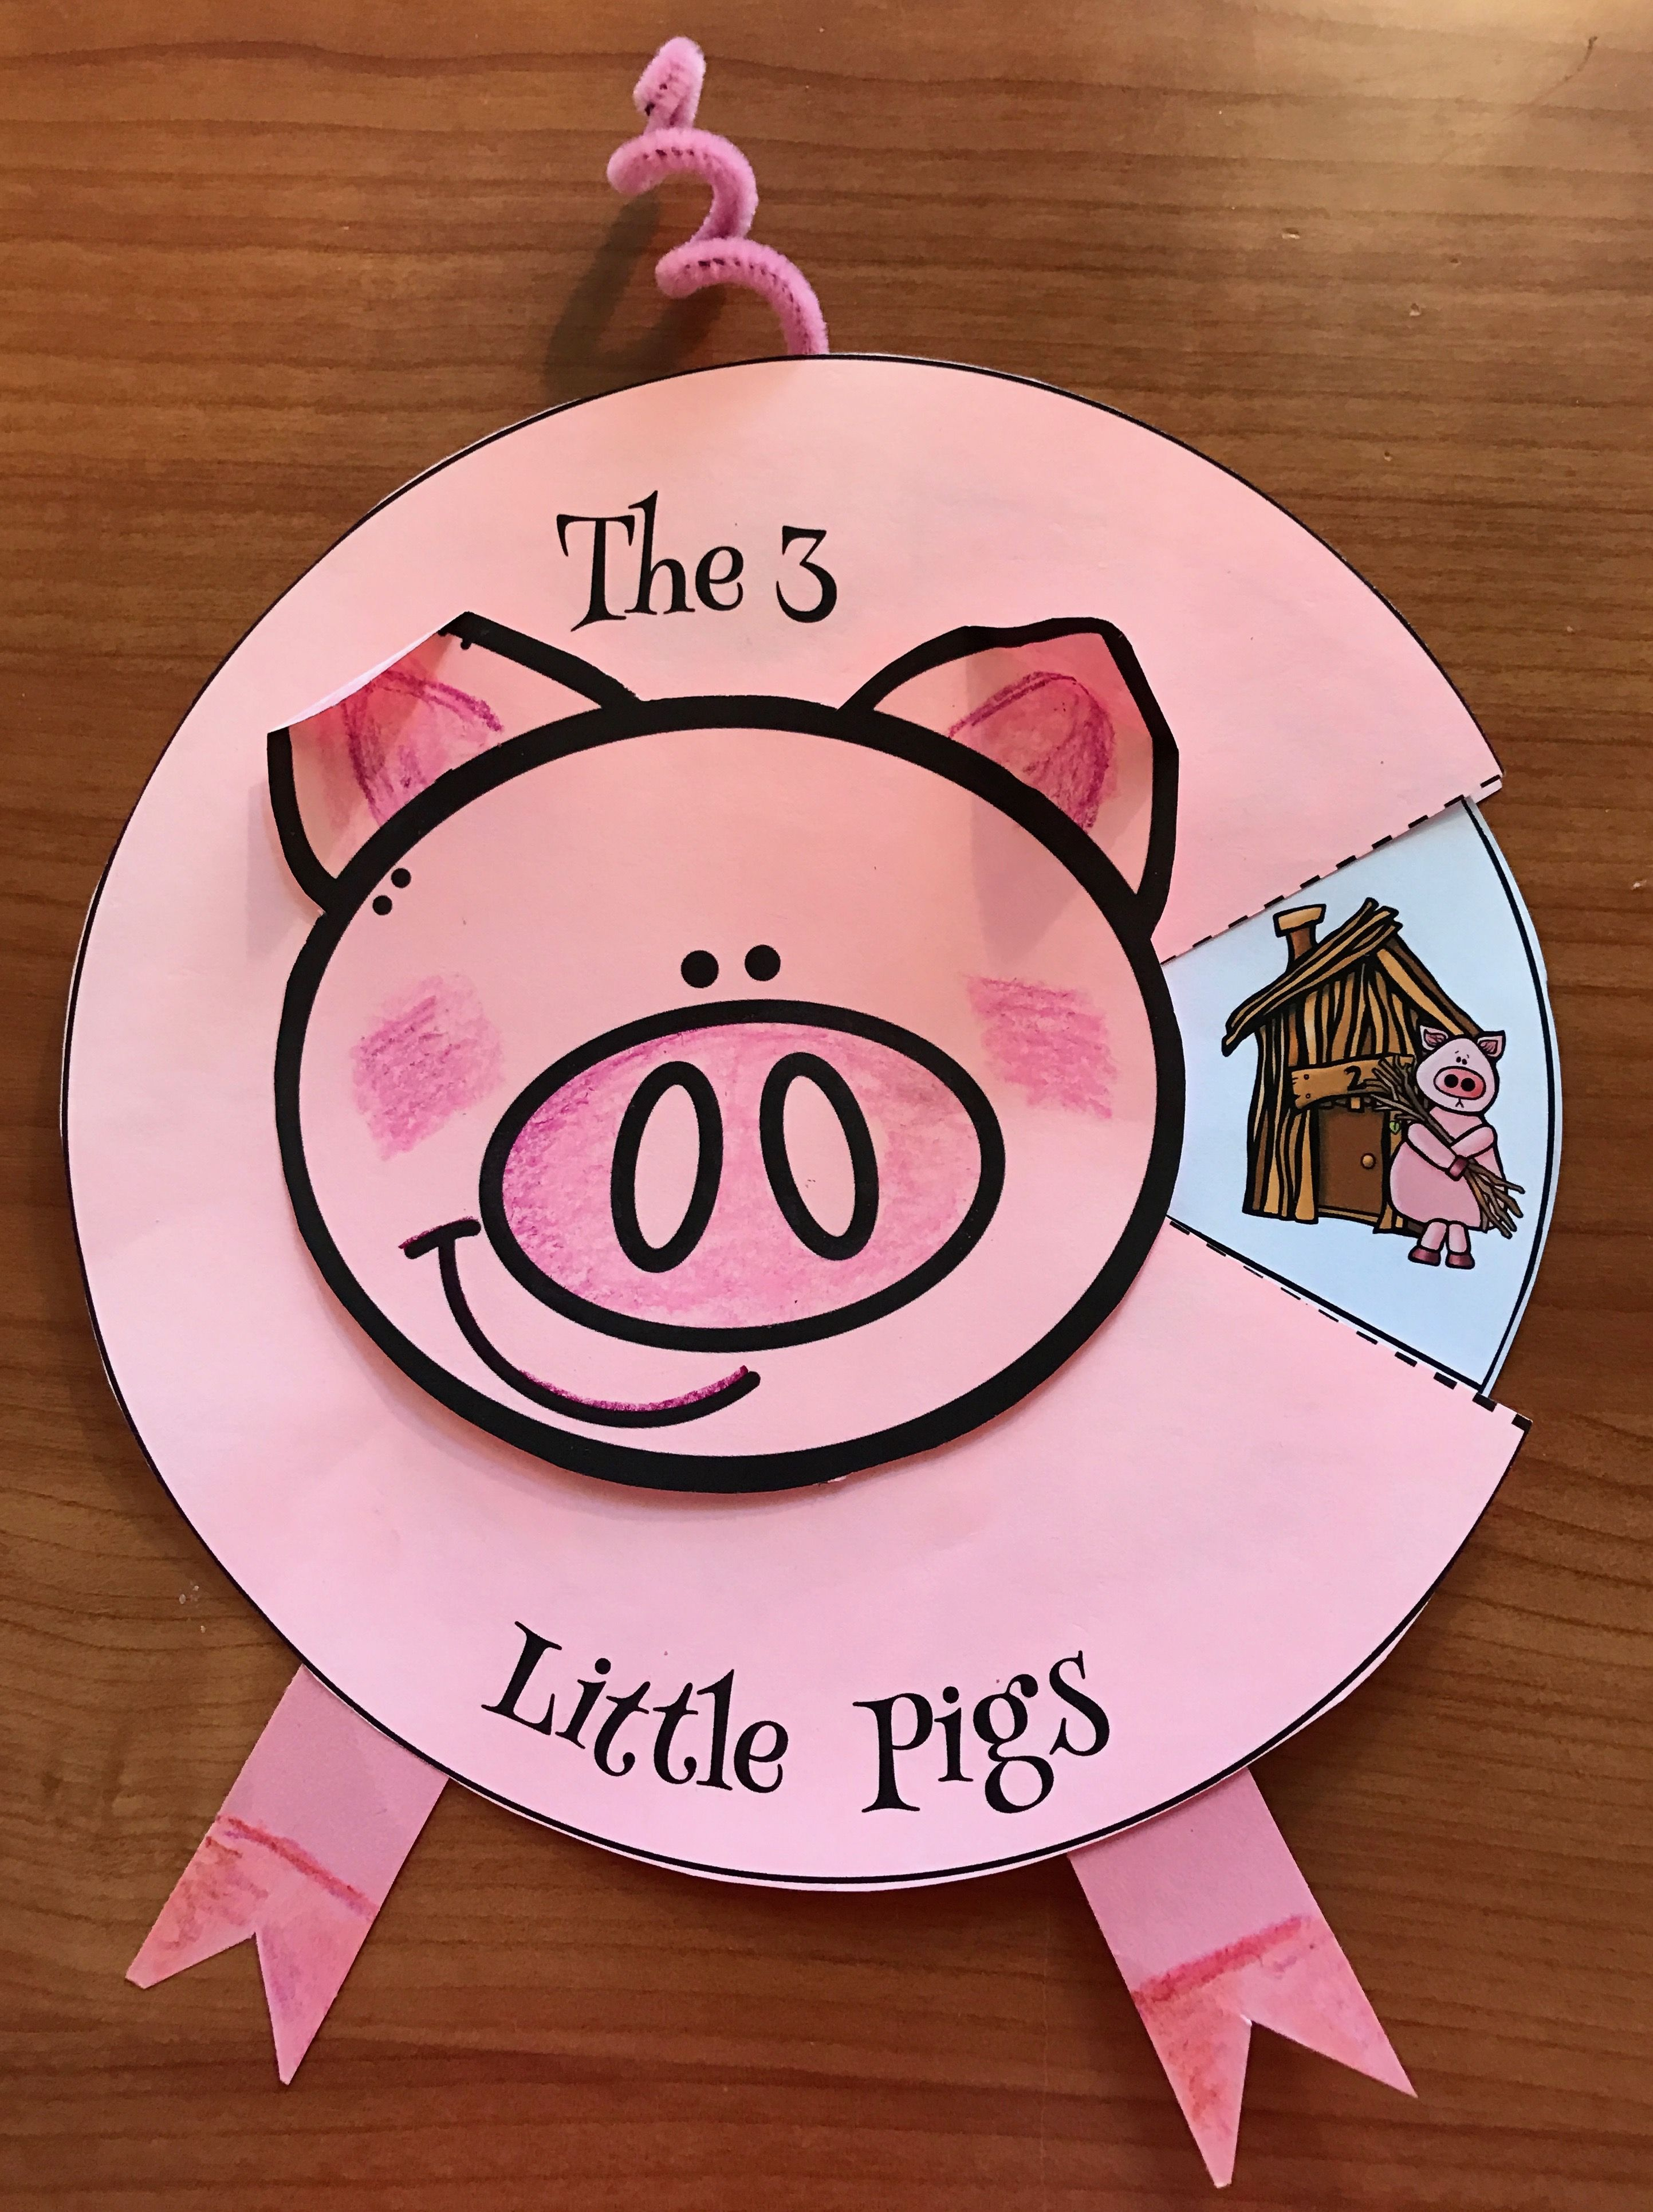 3 Little Pigs Fairy Tale Activities 3 Little Pigs Crafts